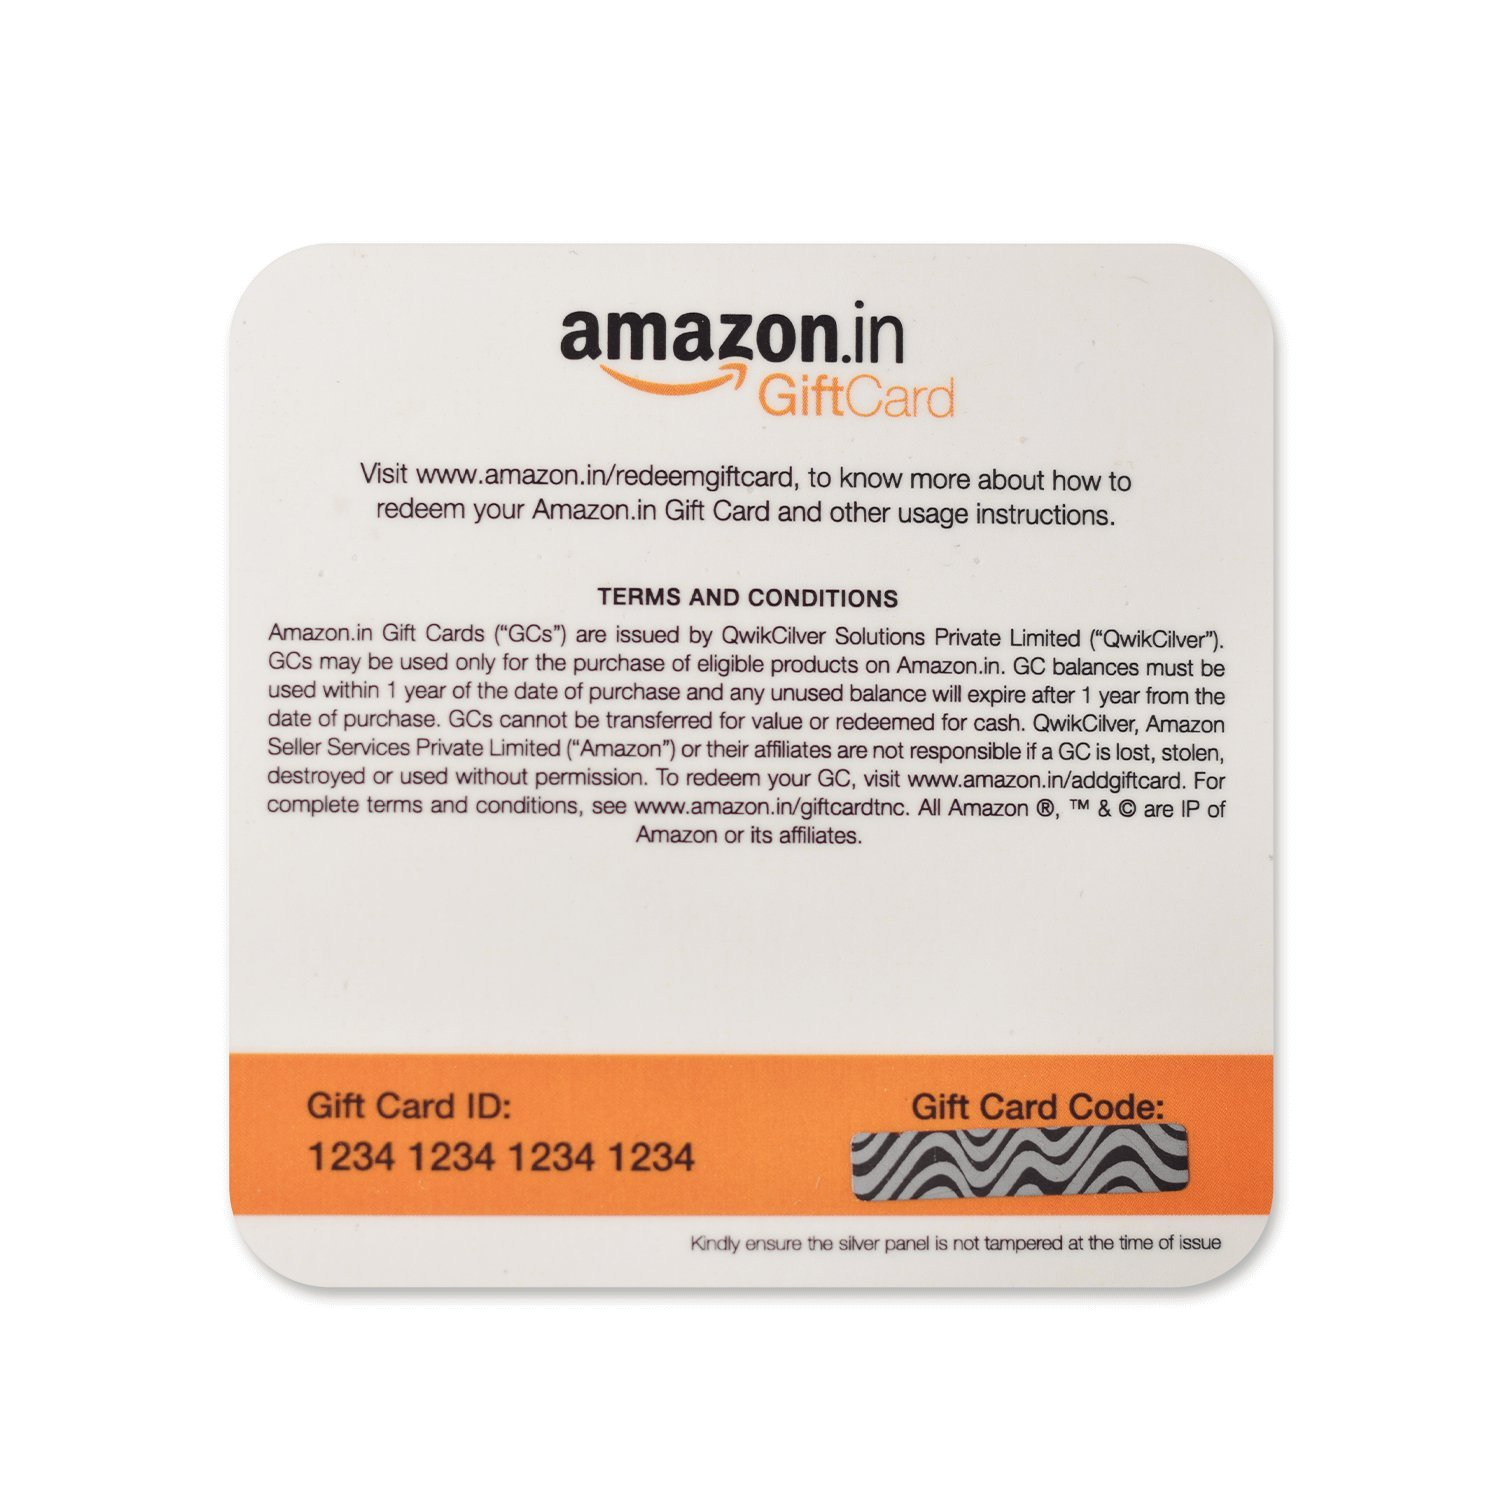 Amazon gift card as a coaster love cupcakesrs1000 amazon amazon gift card as a coaster love cupcakesrs1000 amazon gift cards negle Gallery